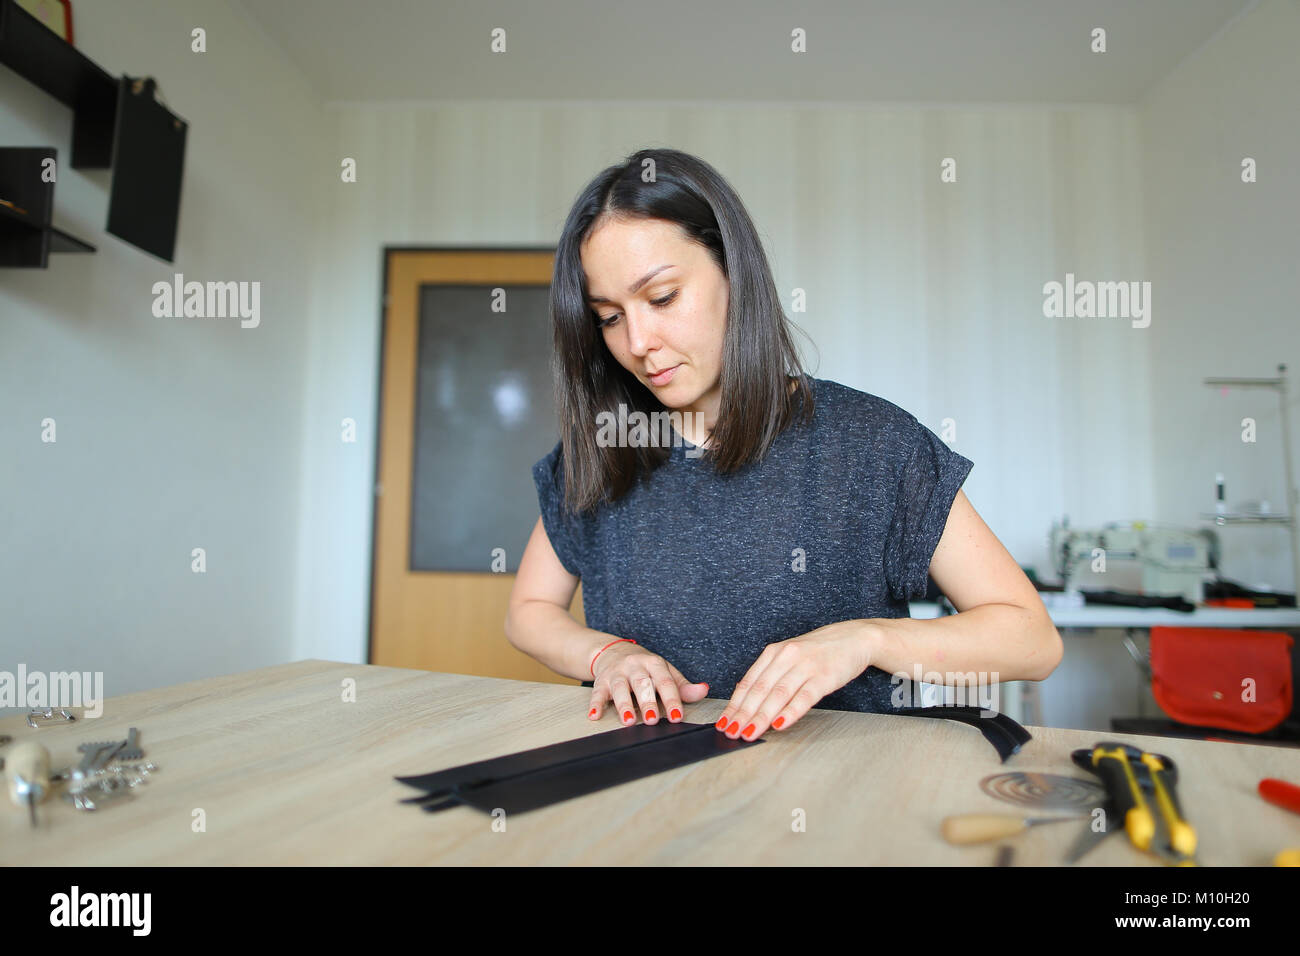 girl preparing leather for making purse. - Stock Image